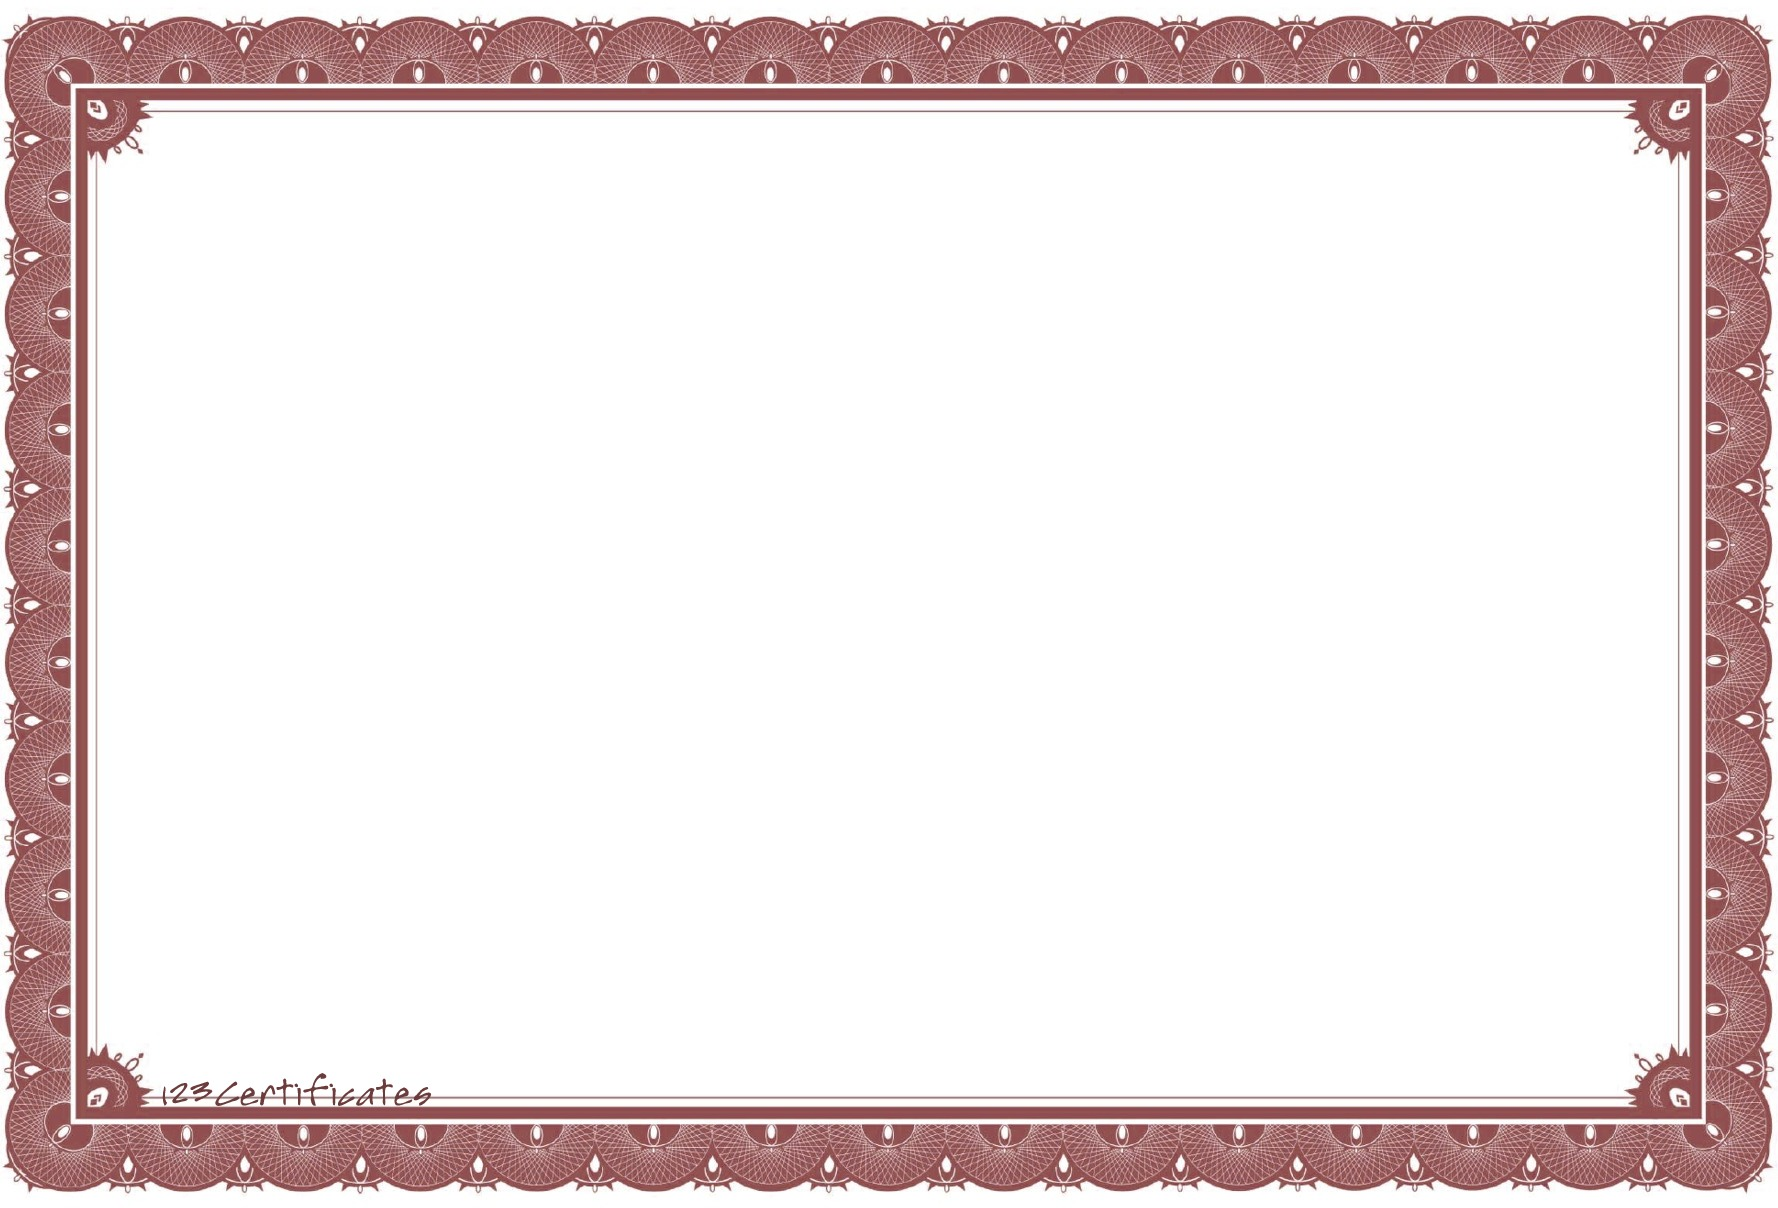 Free certificate borders to download for High school diploma certificate fancy design templates